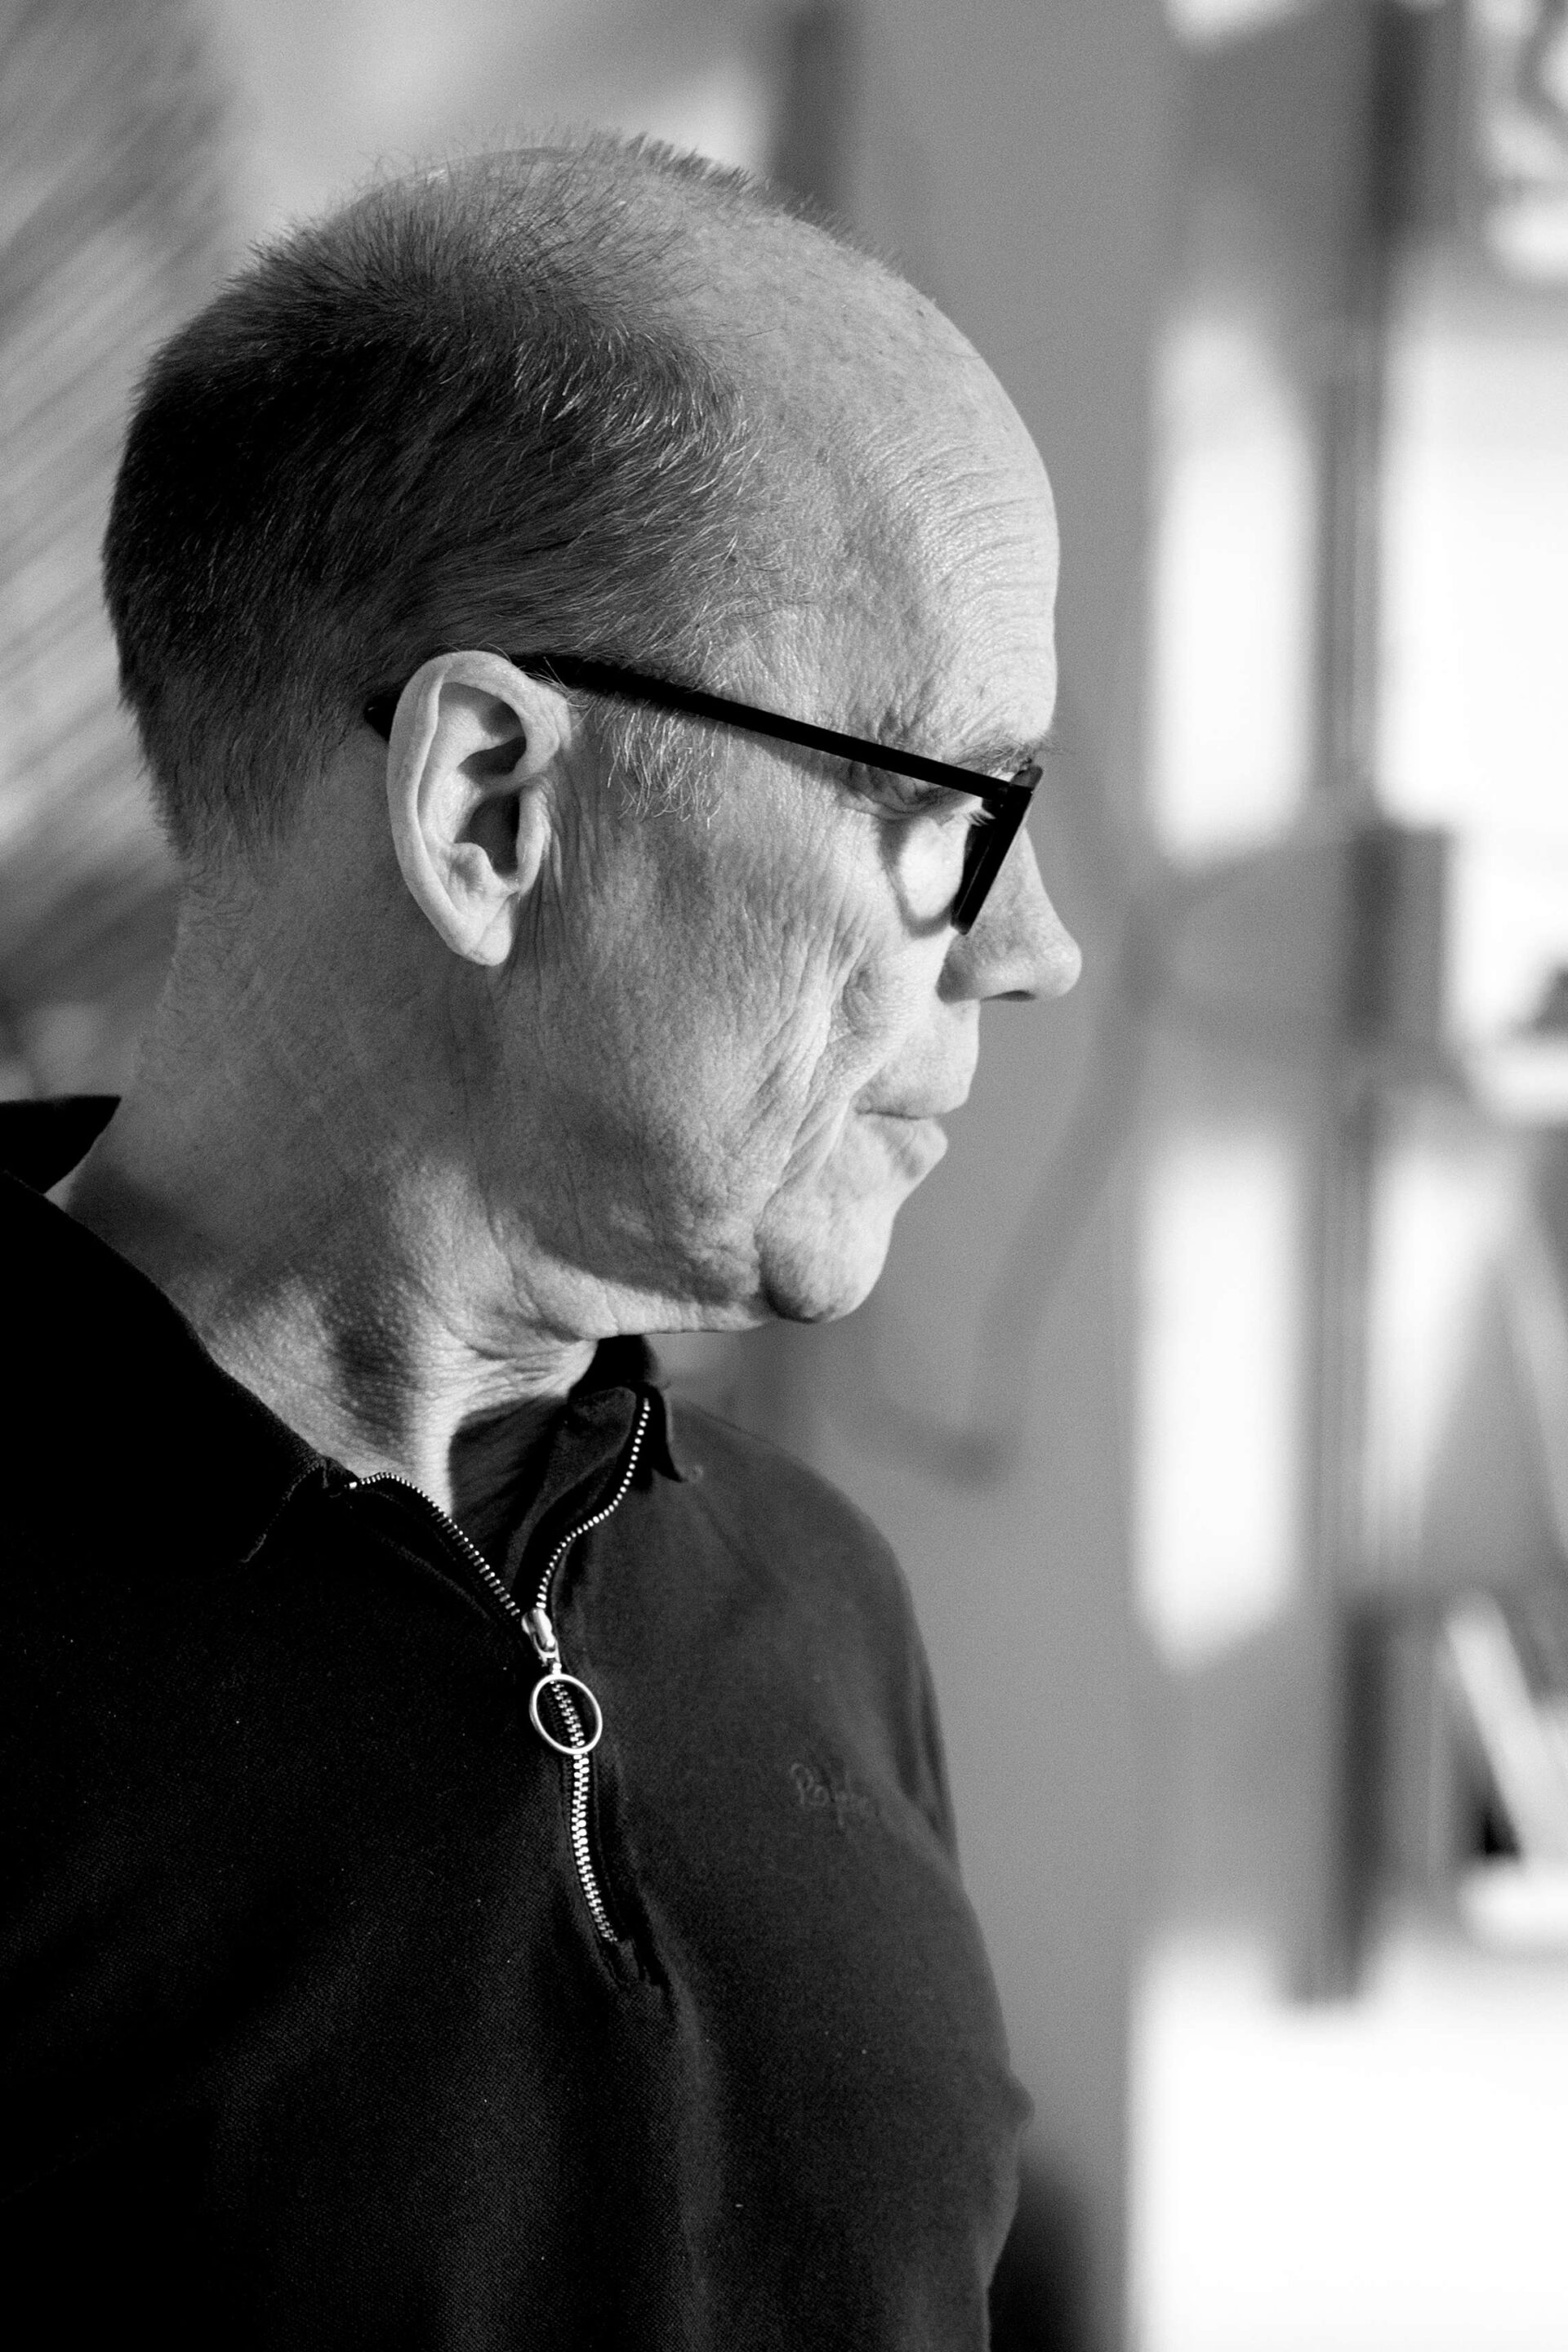 Erik Spiekermann, Berlin 2020